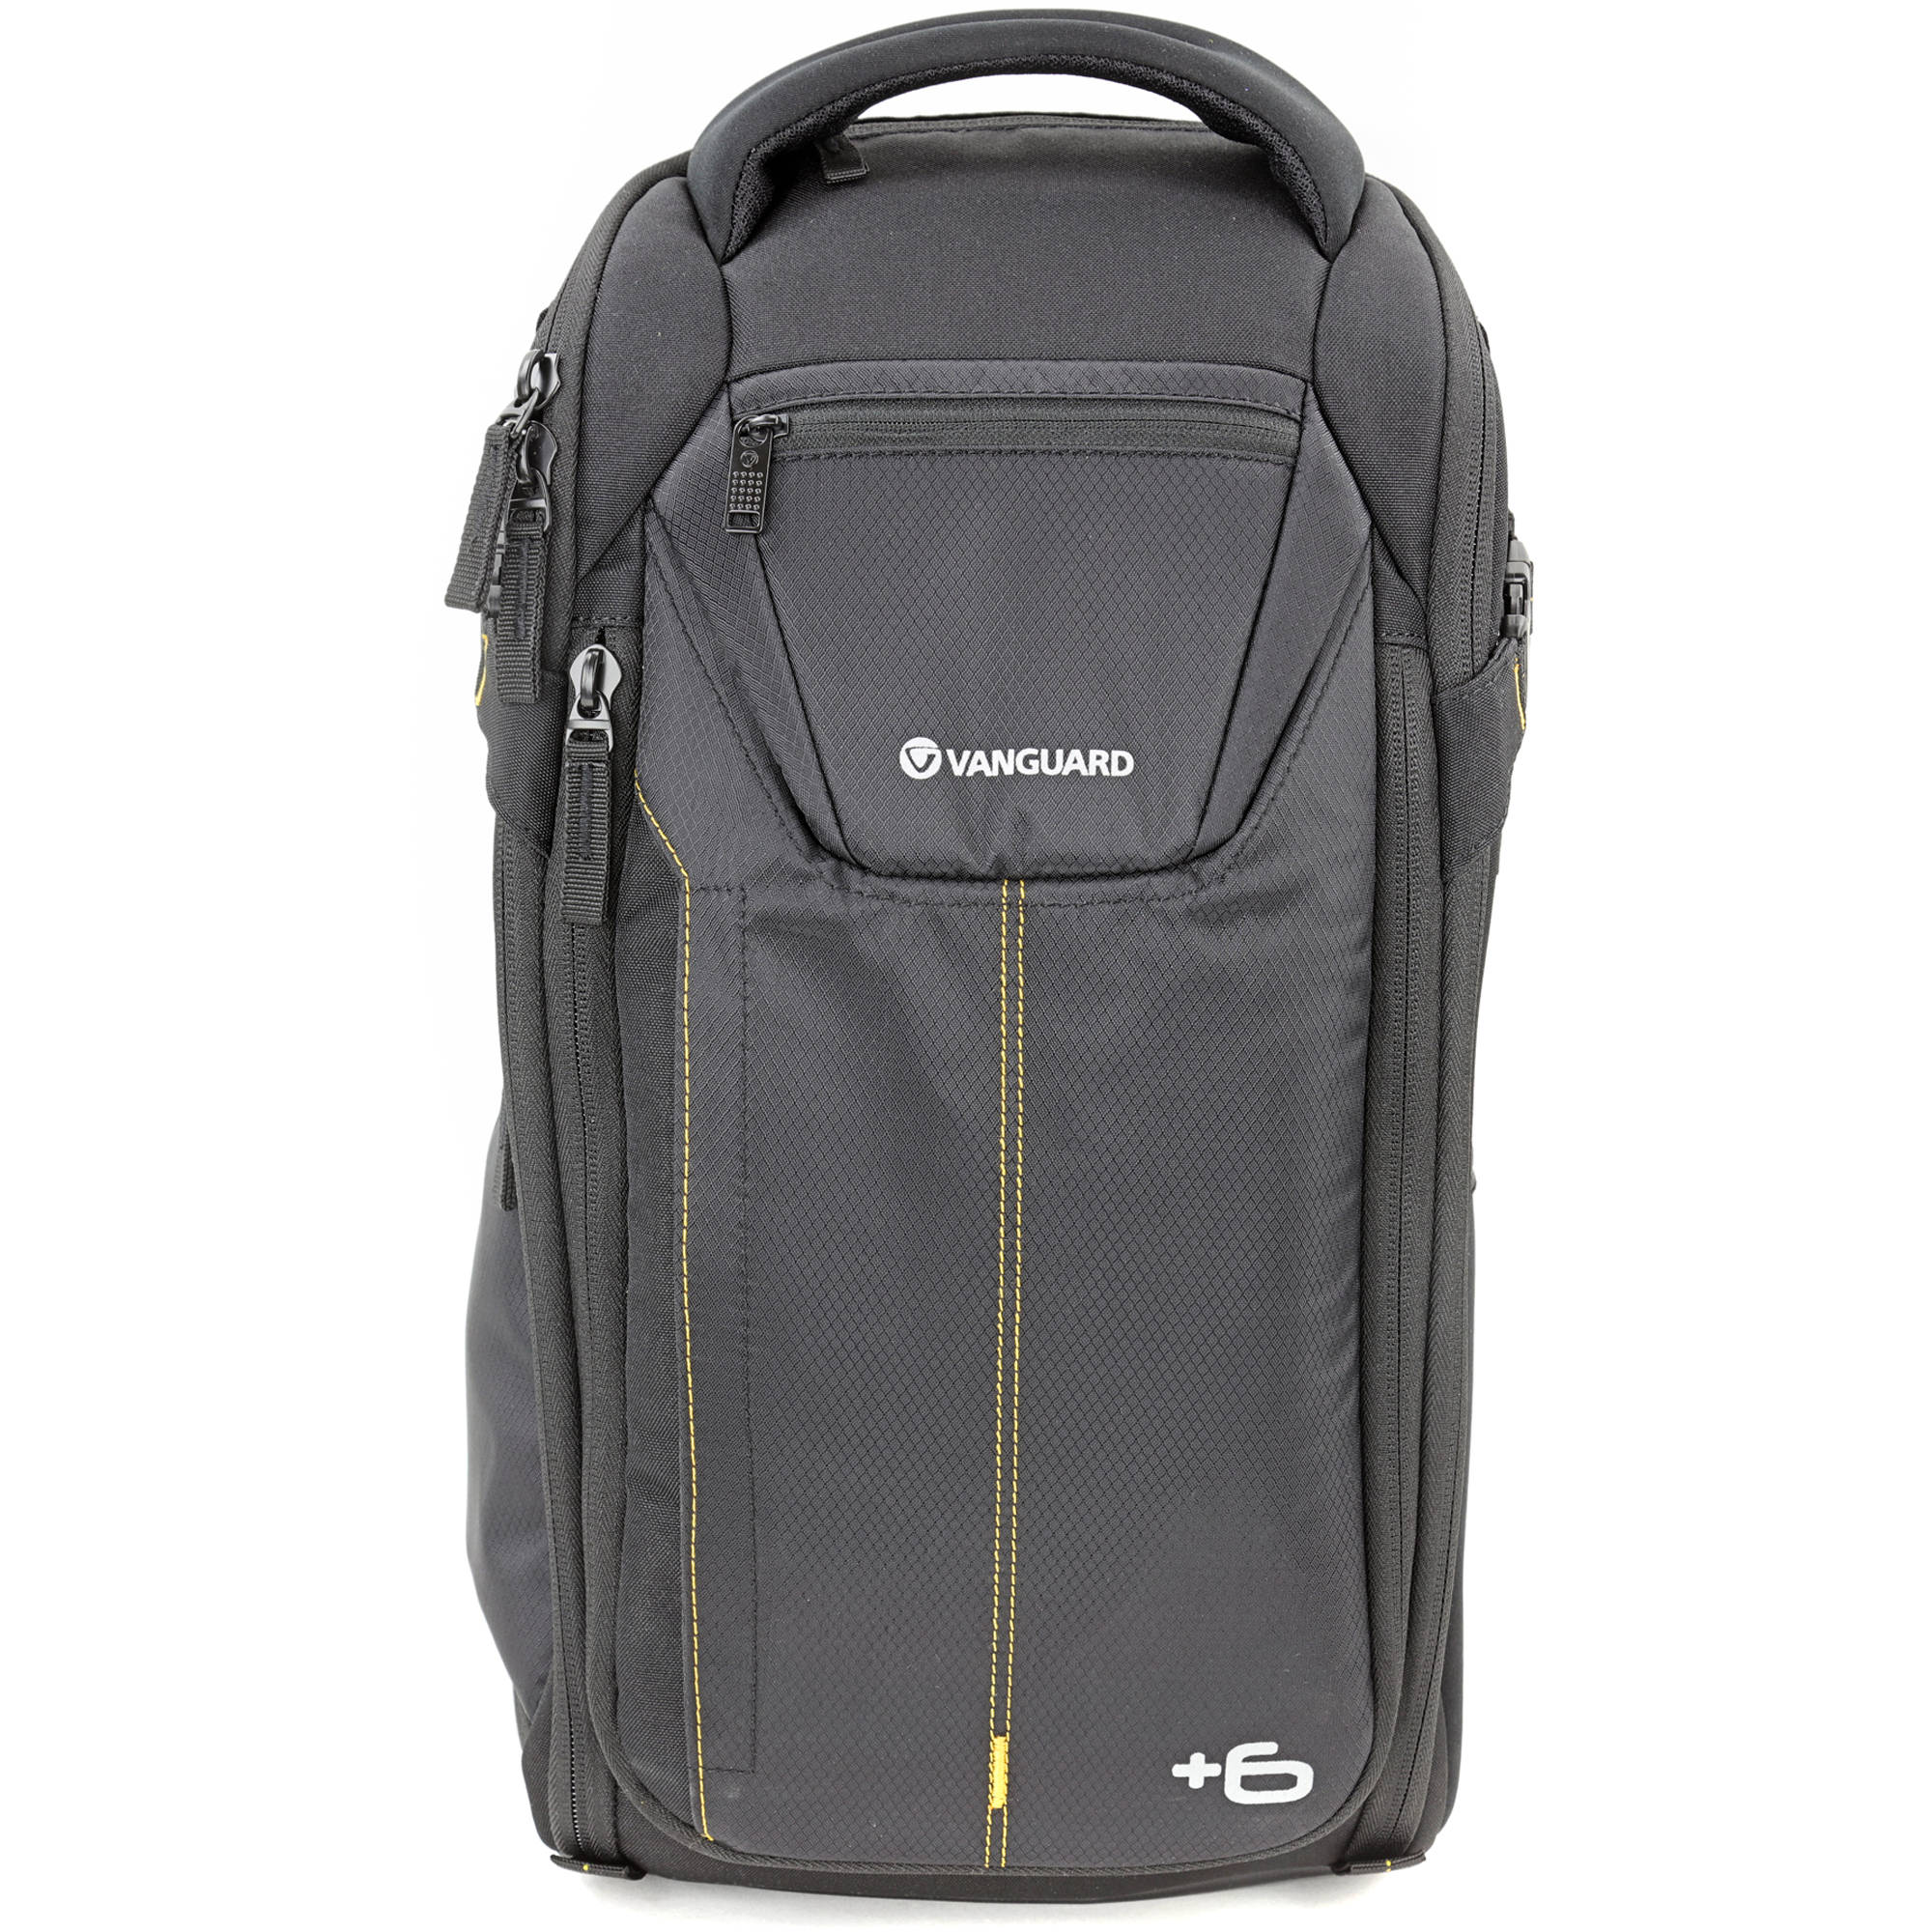 Vanguard The Alta Rise 43 Sling Bag Backpack Black